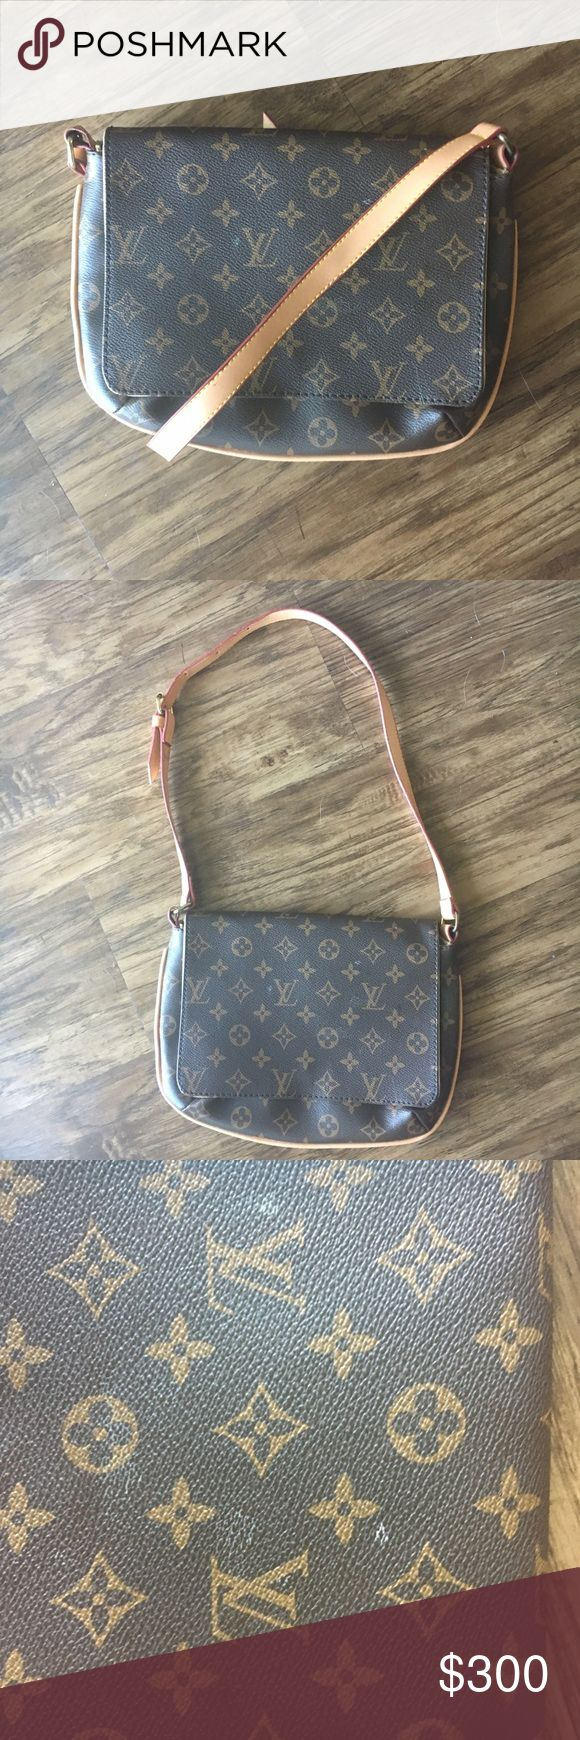 Authentic LV Monogram Musette Tango Short Strap Price negotiable! This is an authentic, well-loved Louis Vuitton purse that still has a lot of life left in it! There are some markings on the leather on the front and the back of the purse (pictured). There is some wear and tear on the shoulder strap and some of the hardware is a little scratched. Purse style is m51257, date code is SD0091. Louis Vuitton Bags